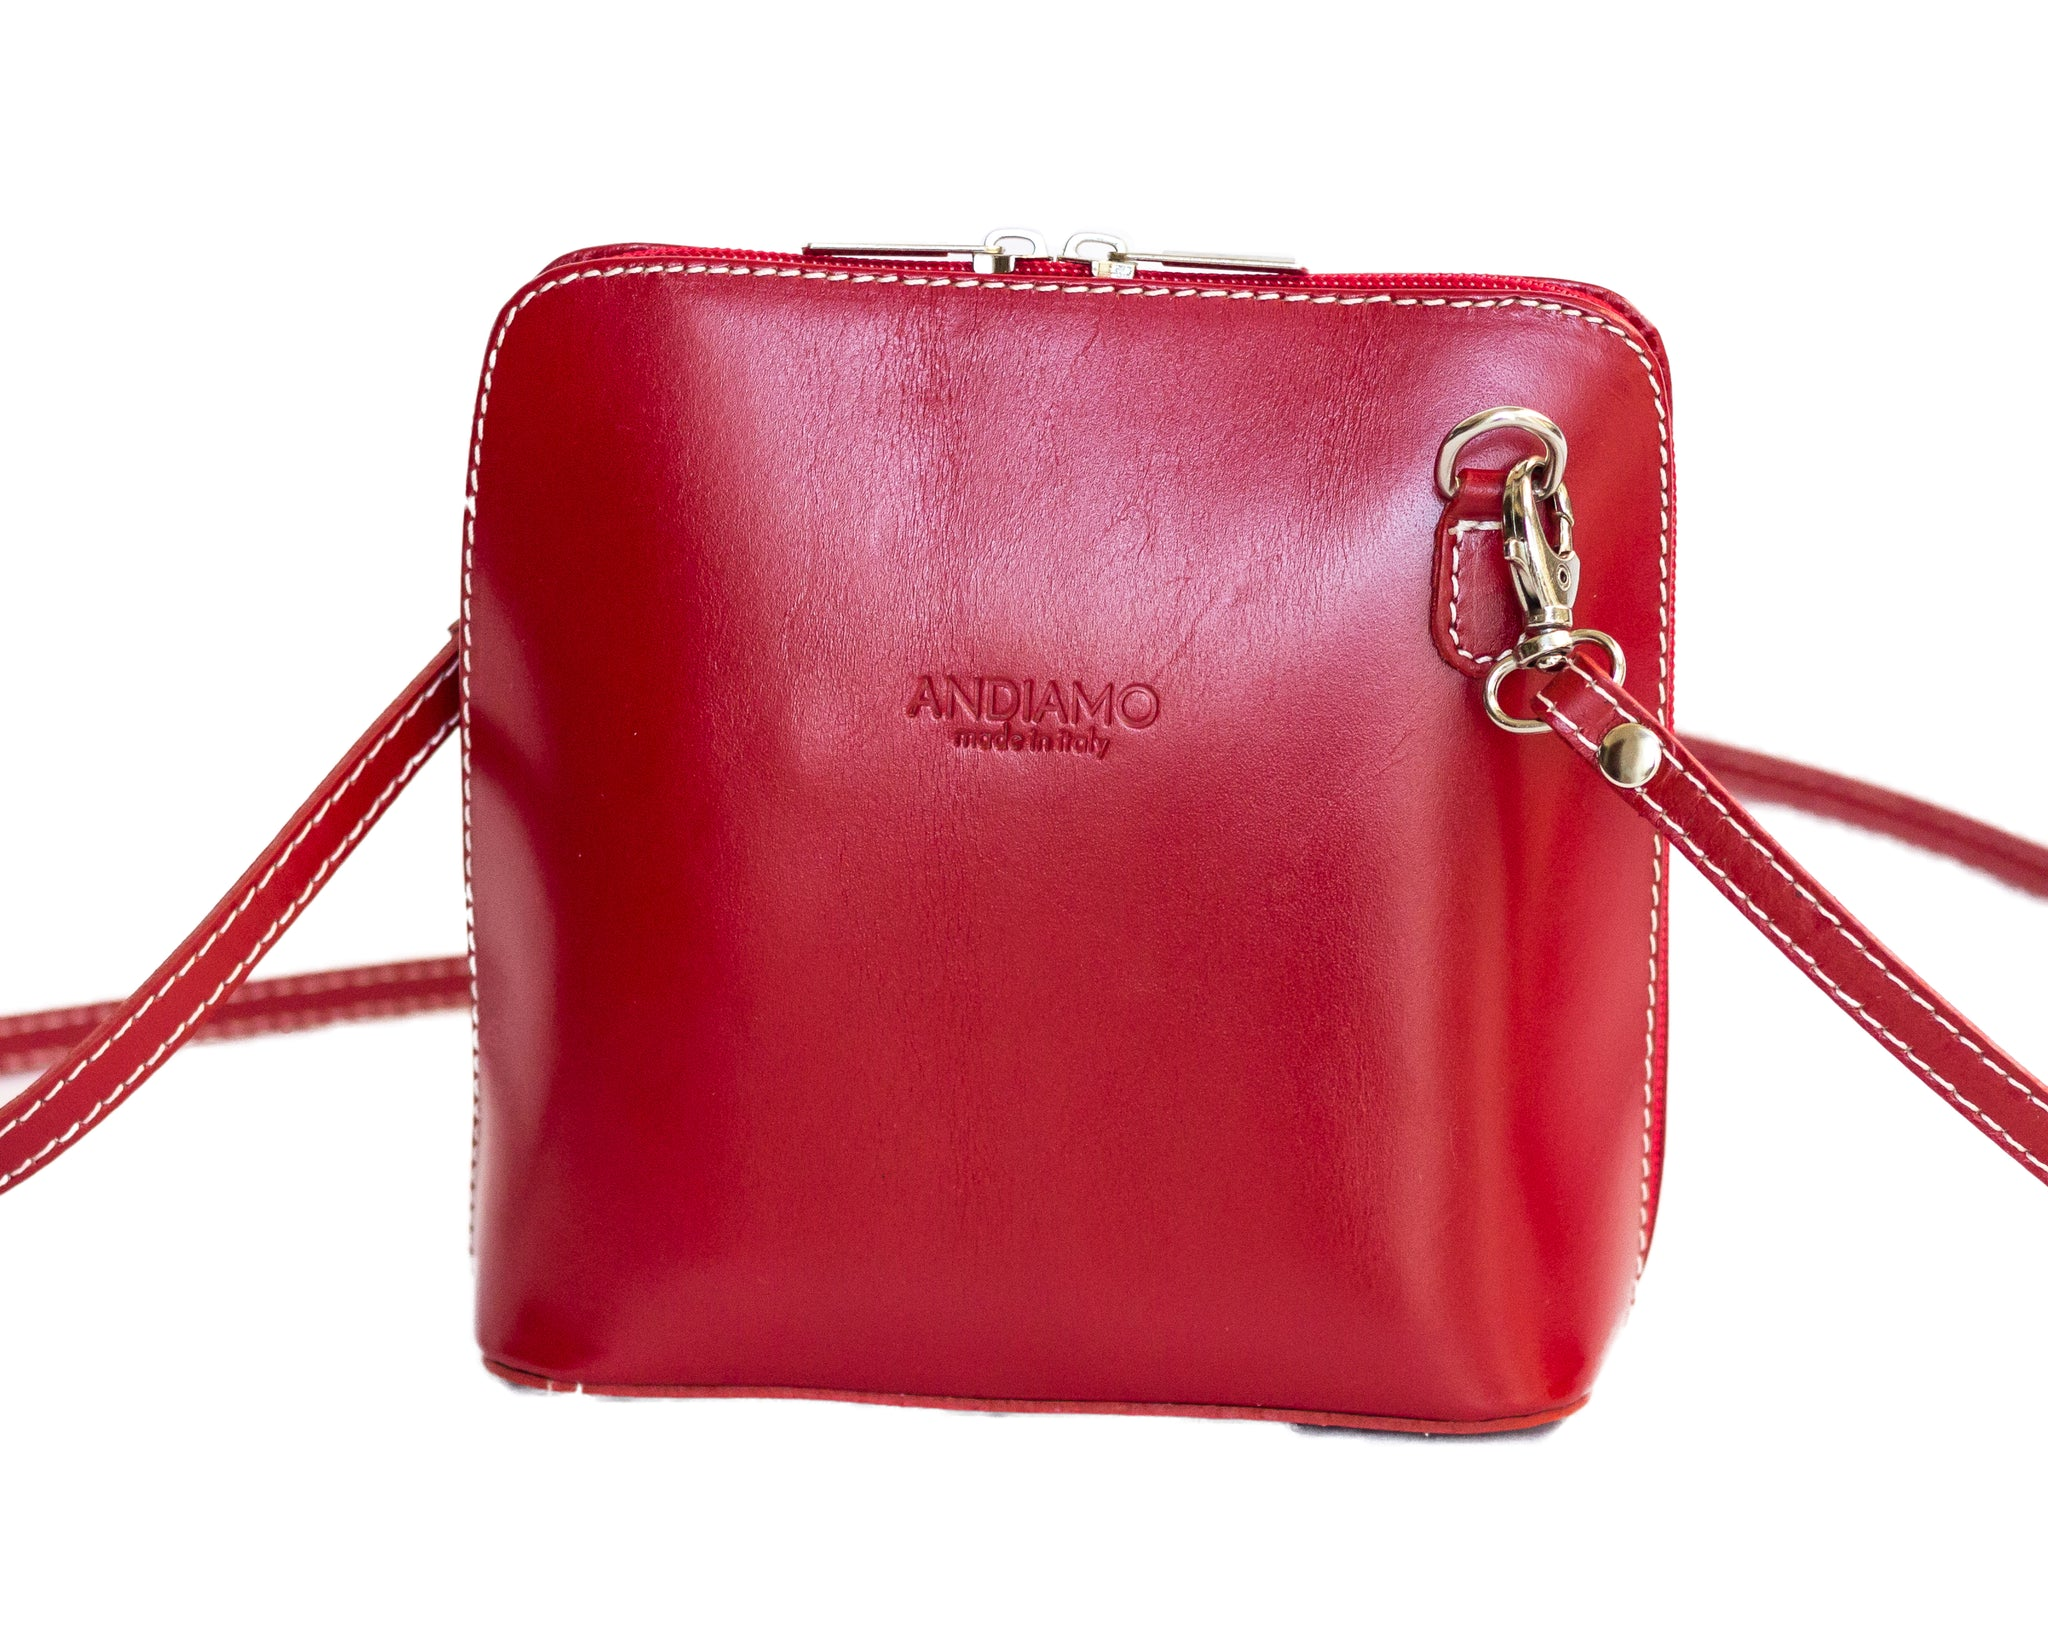 Carolina Crossbody